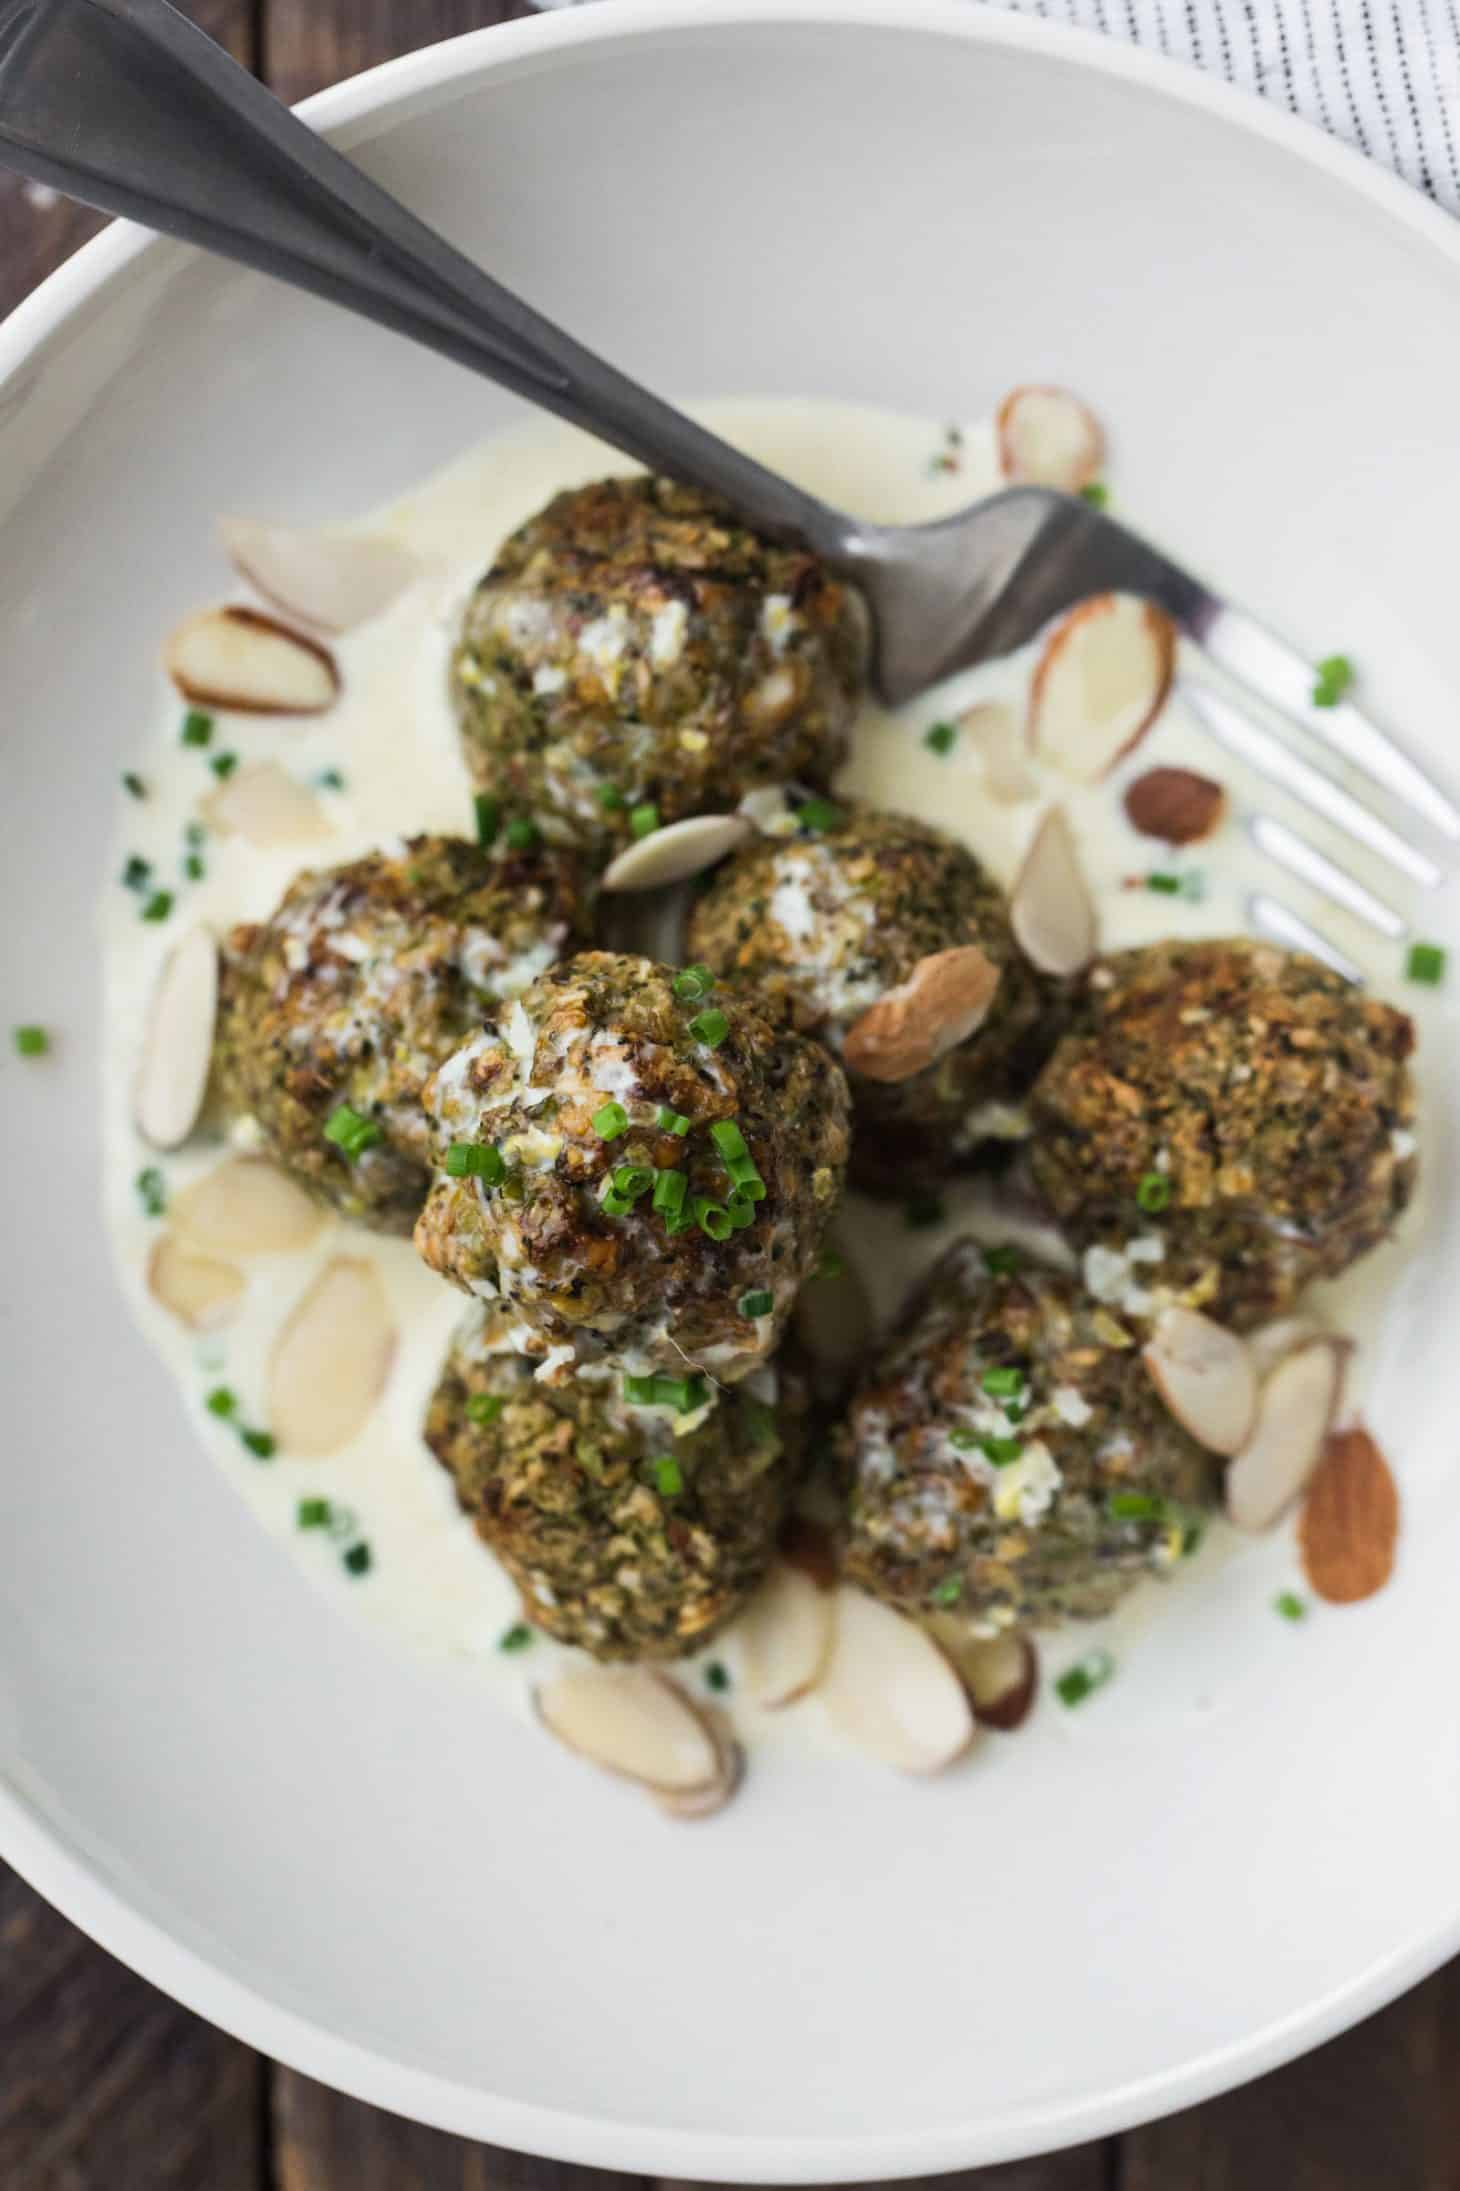 Lentil Broccoli Bites with Lemon Cream Sauce